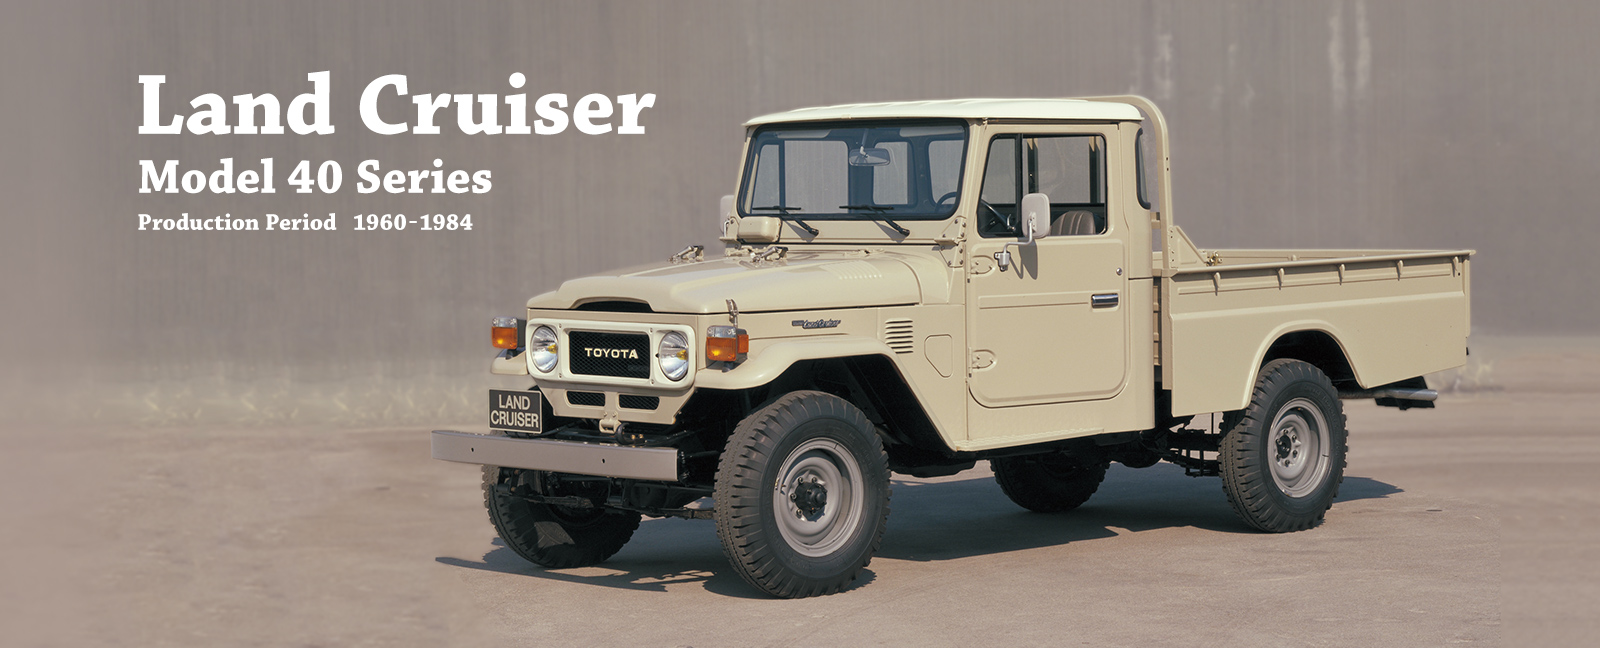 Vehicle heritage land cruiser model 40 series